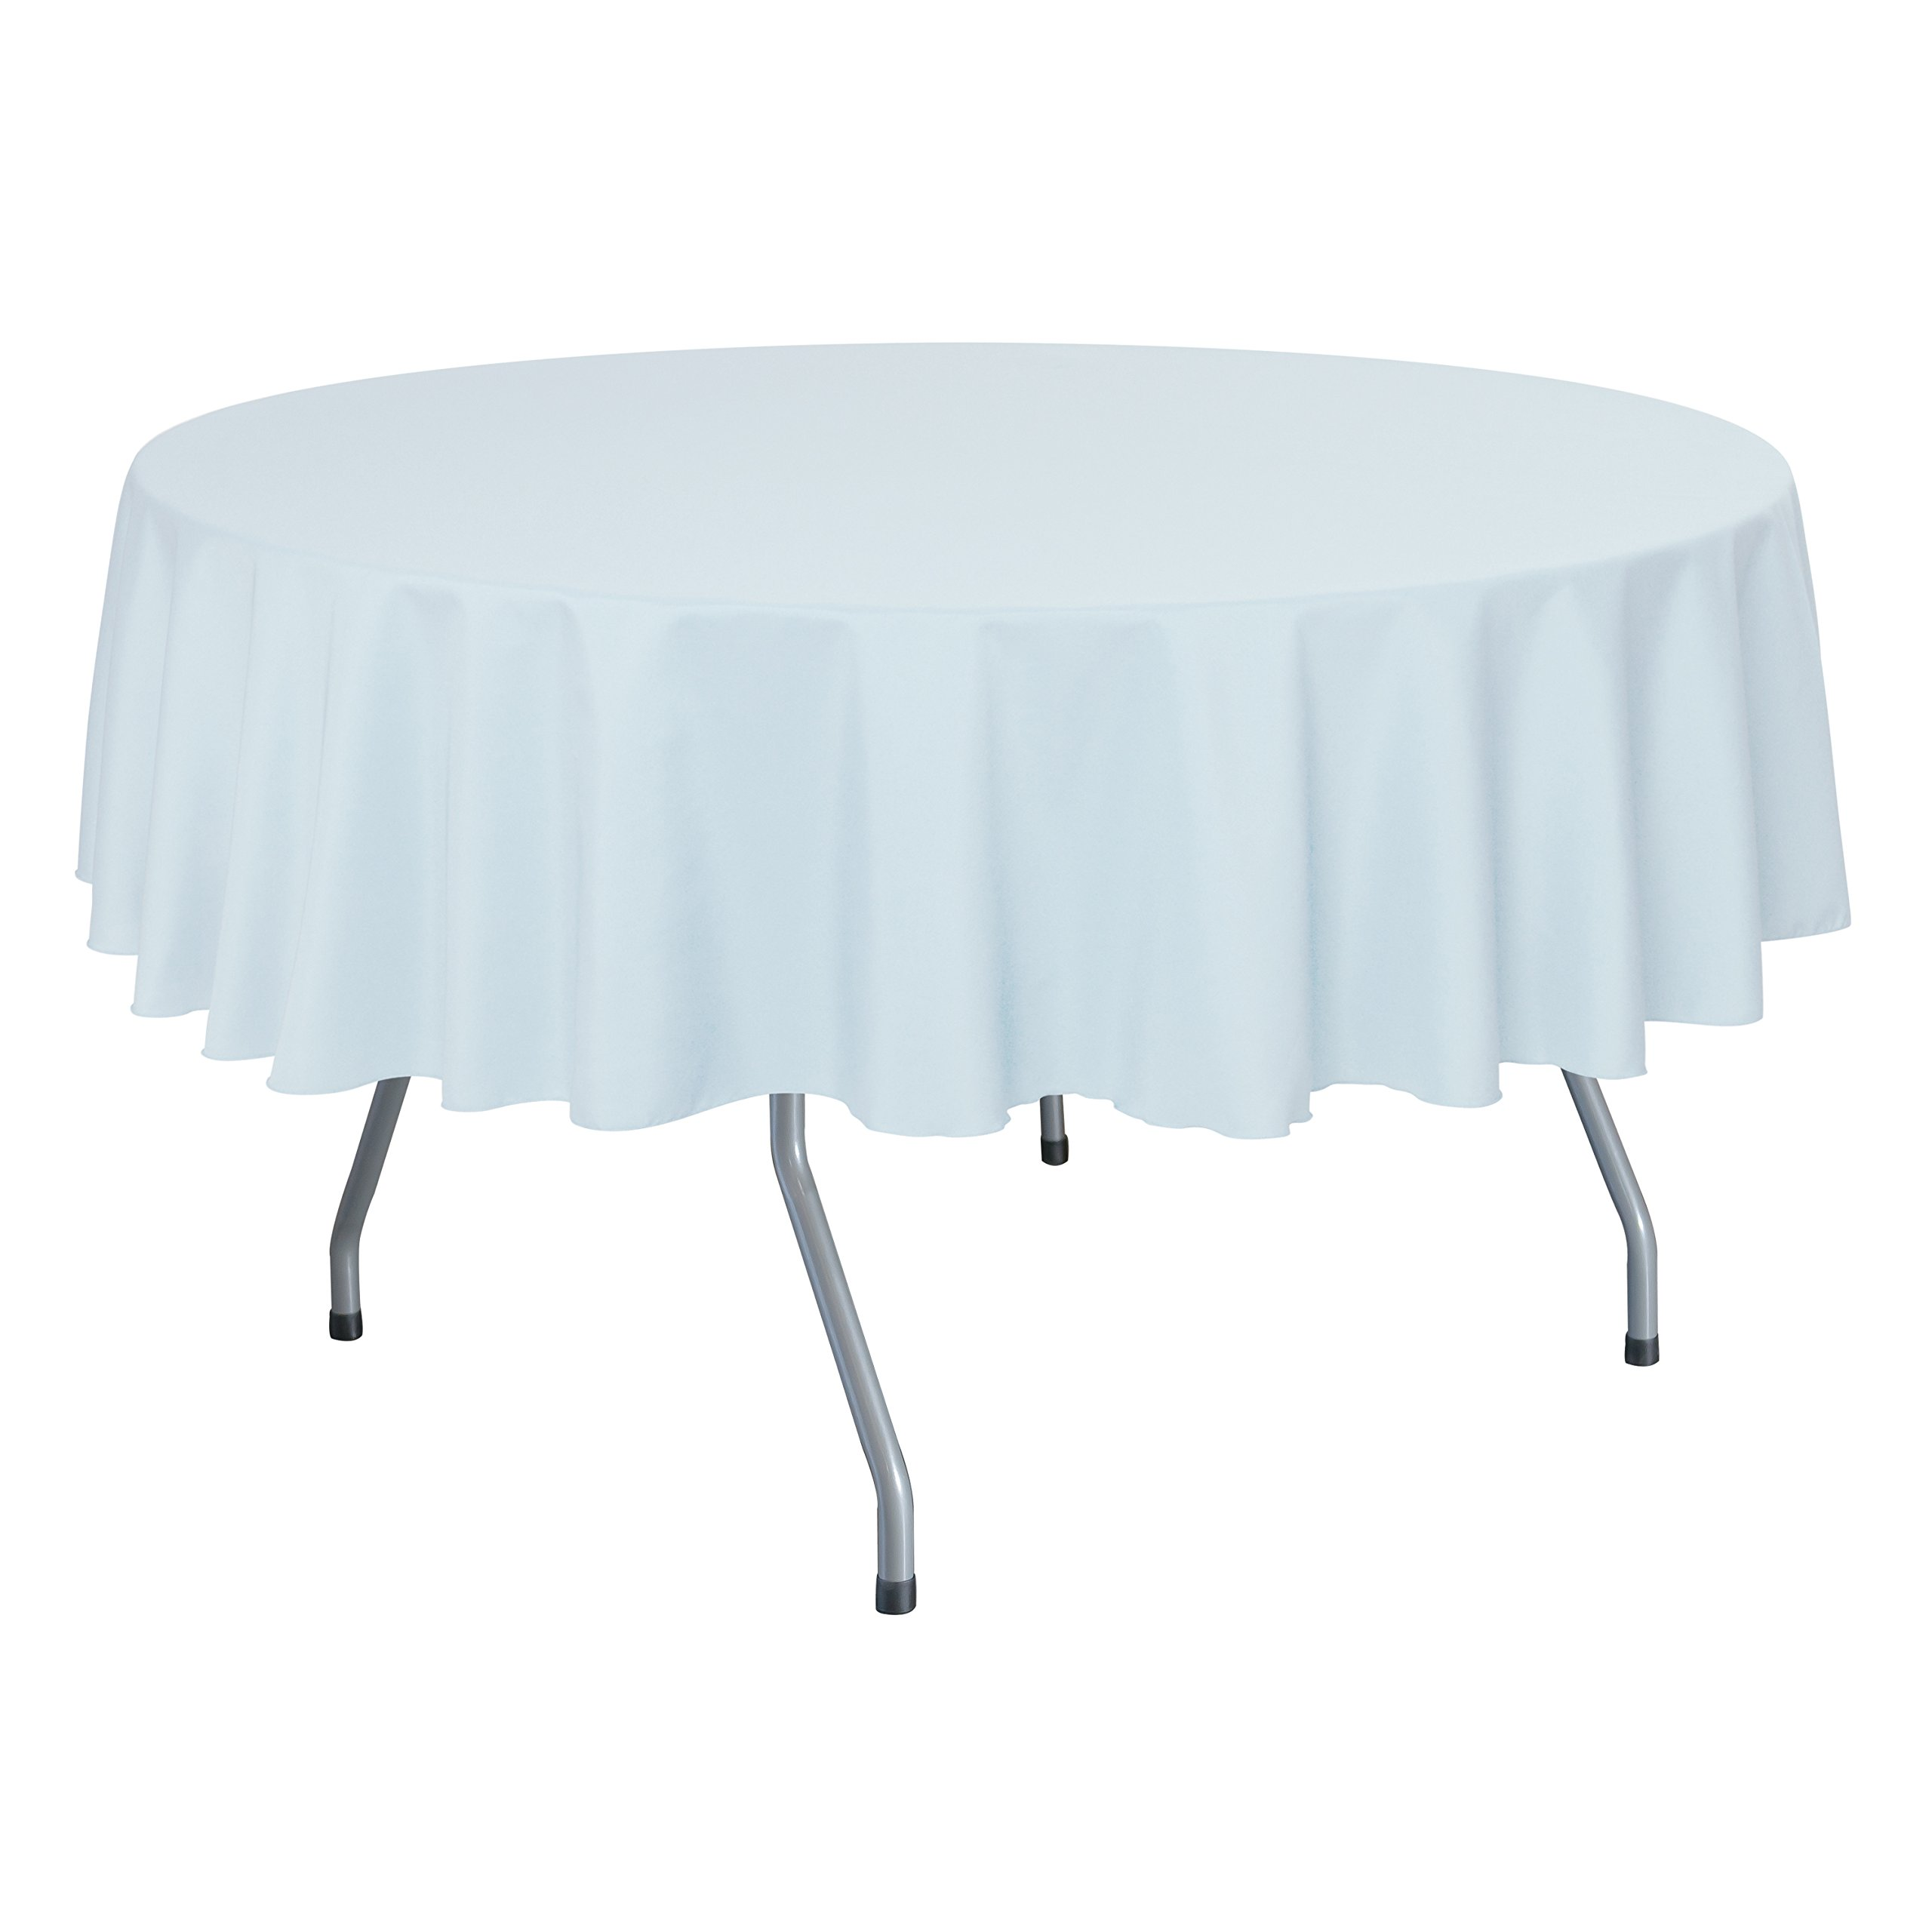 Ultimate Textile (10 Pack) 70-Inch Round Polyester Linen Tablecloth - for Wedding, Restaurant or Banquet use, Ice Blue